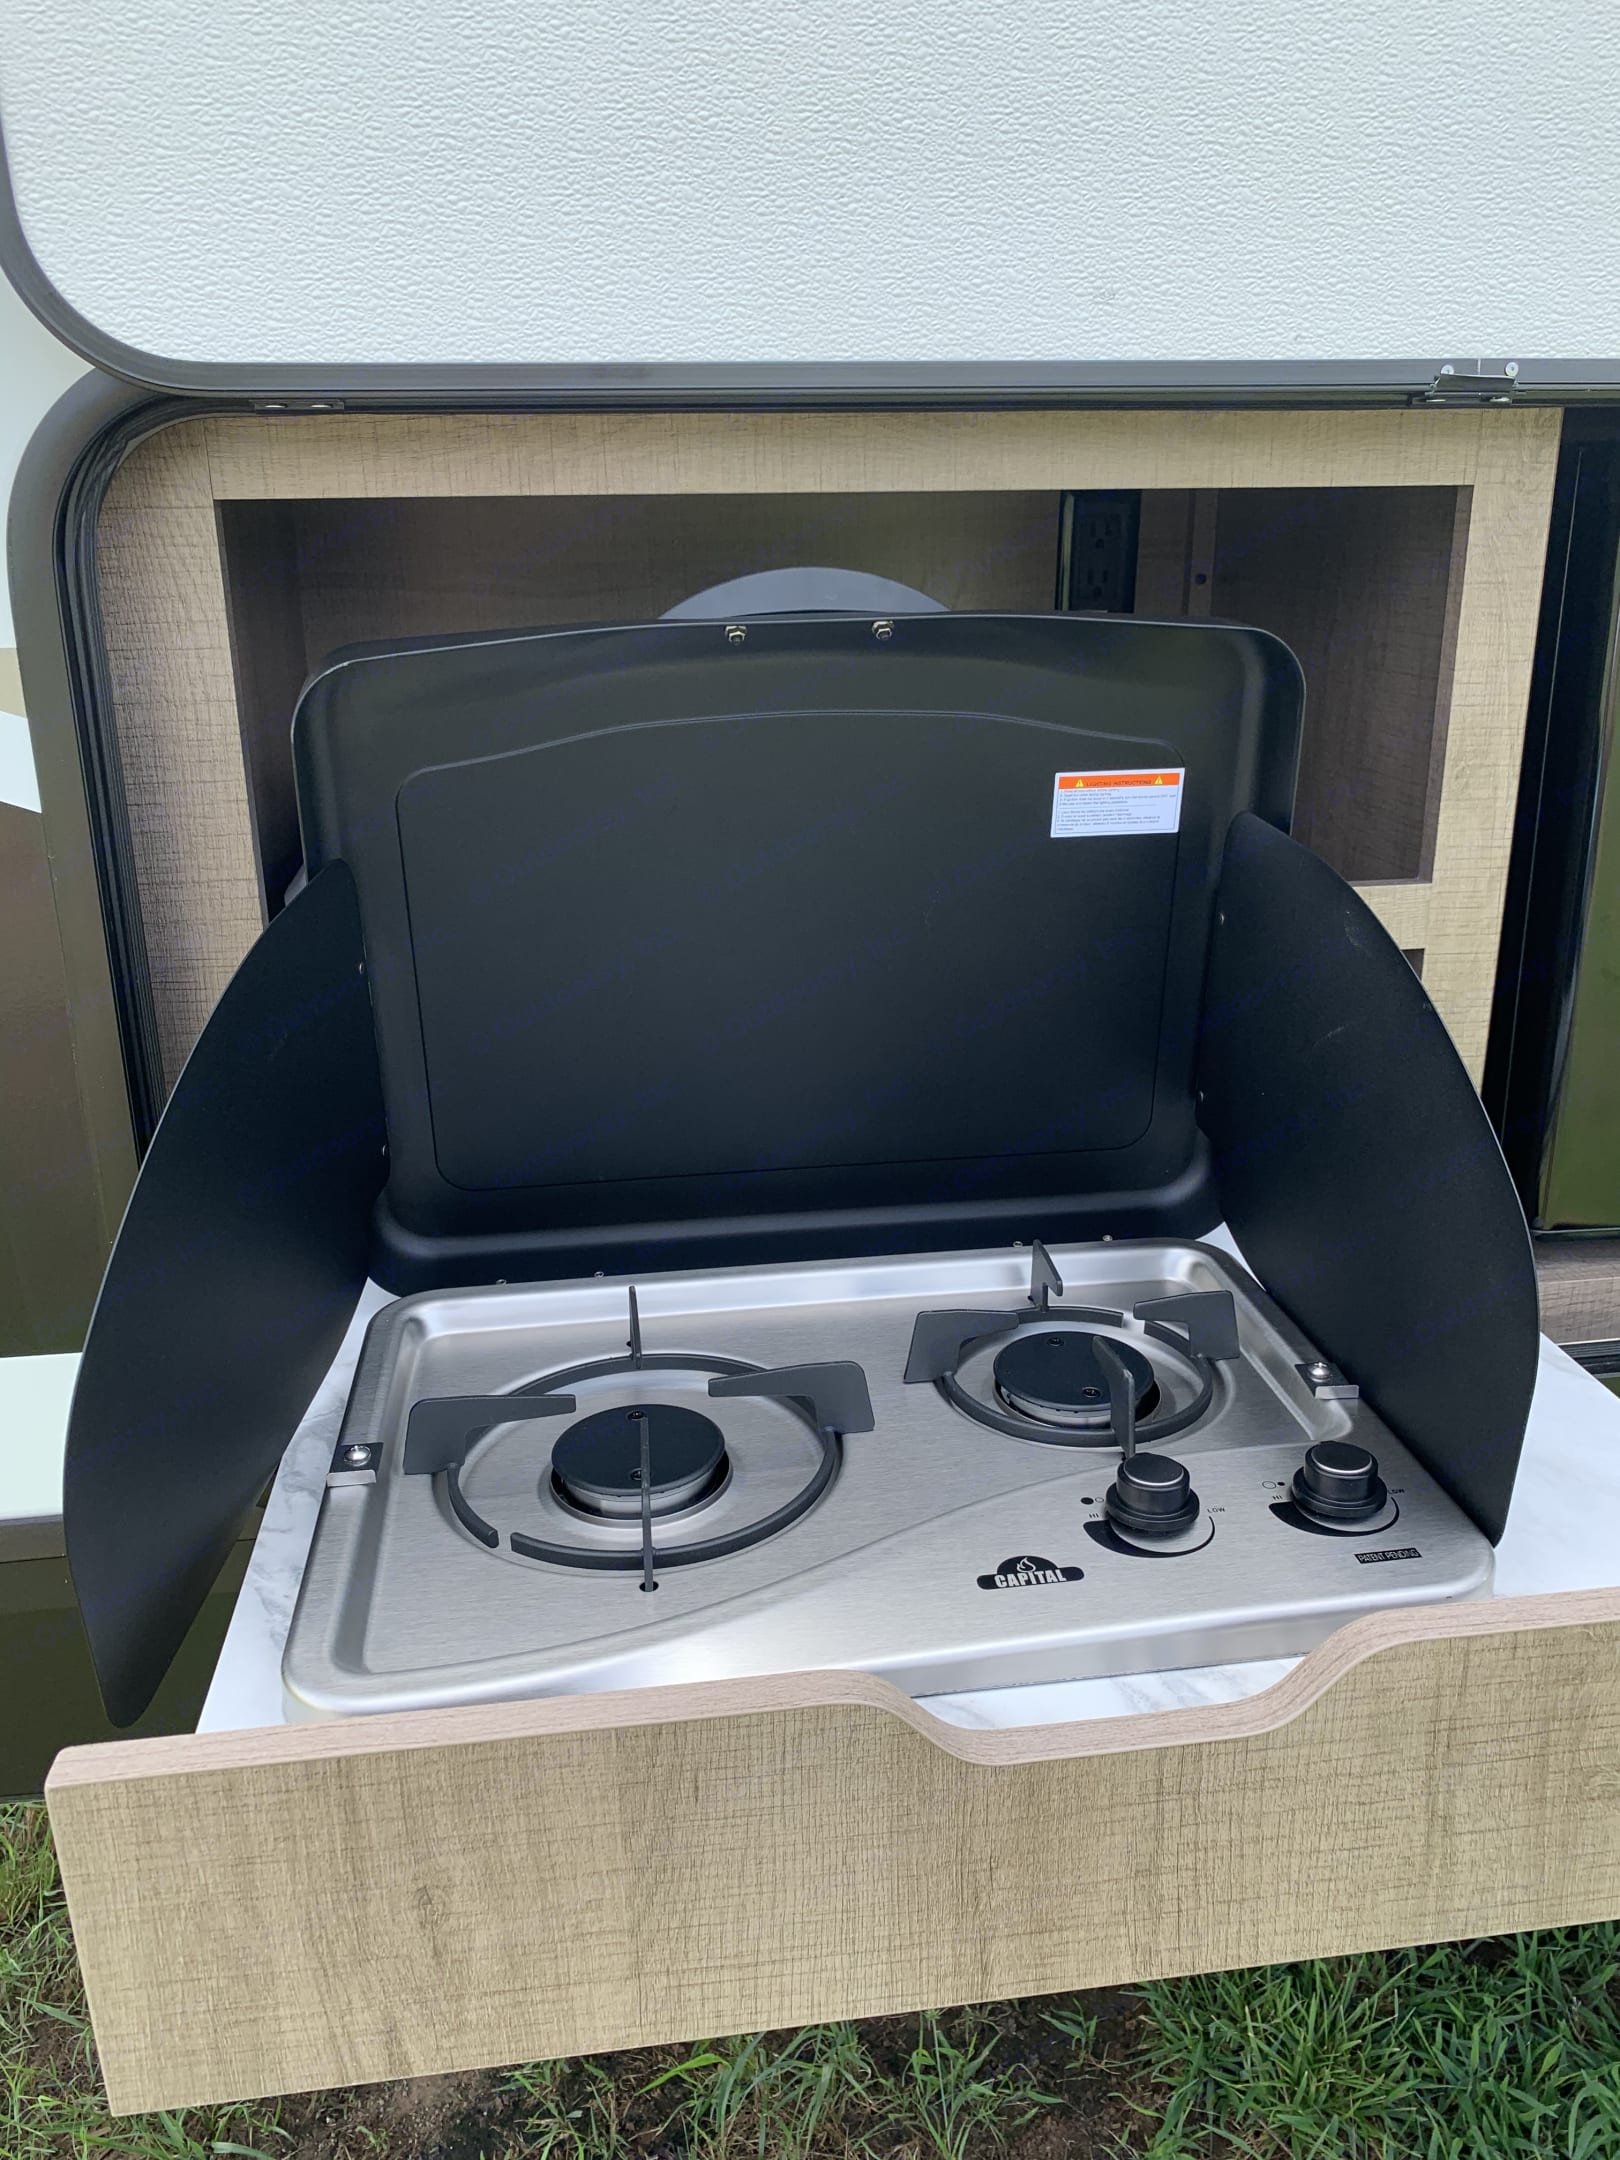 Outdoor stove. Grand Design Other 2021